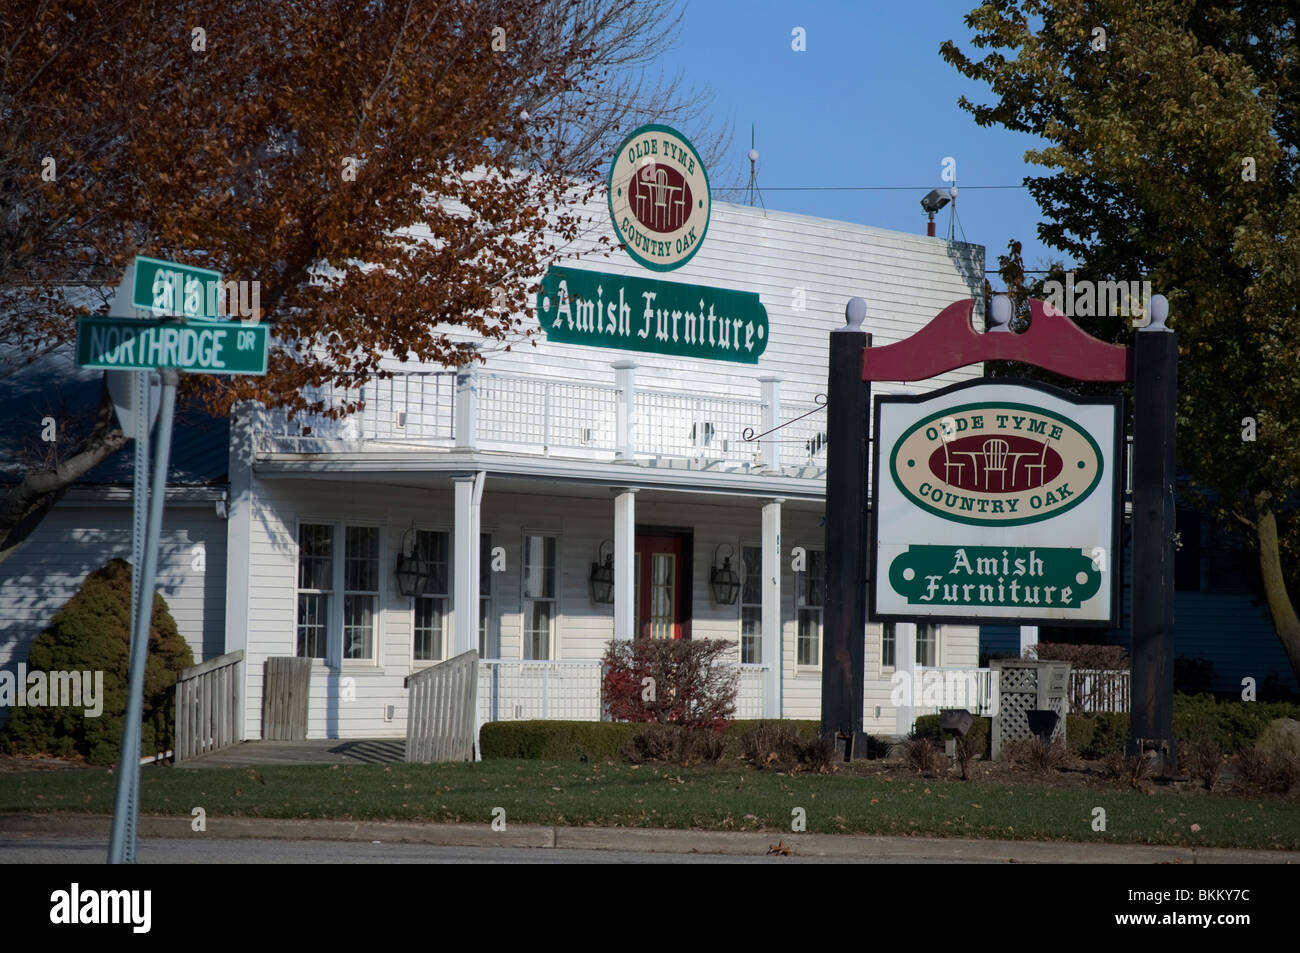 Old Tyme Paese Amish Oak Furniture Store in Shipshewana, Indiana Immagini Stock